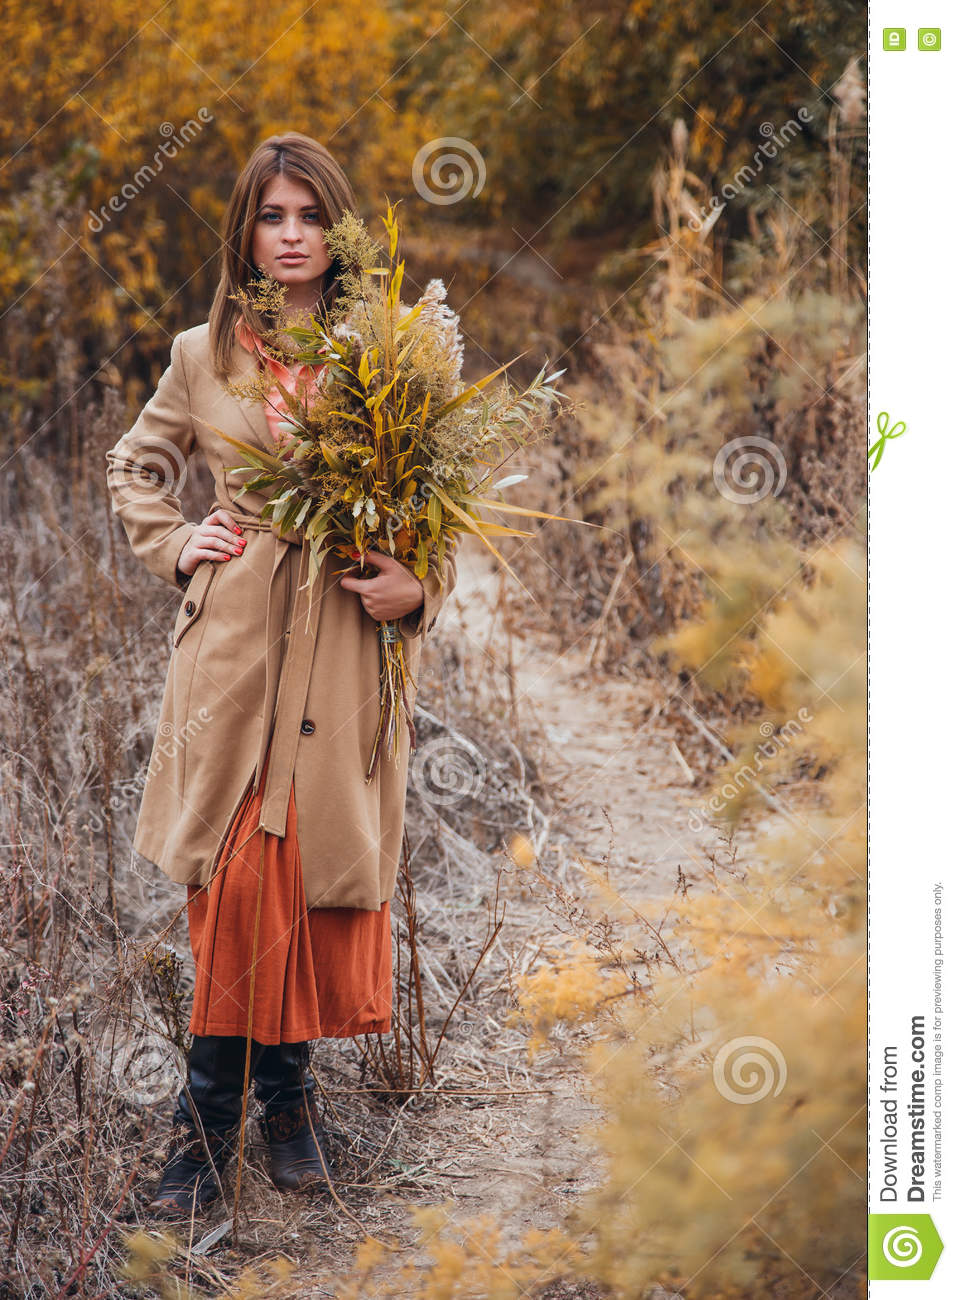 girl made of nature